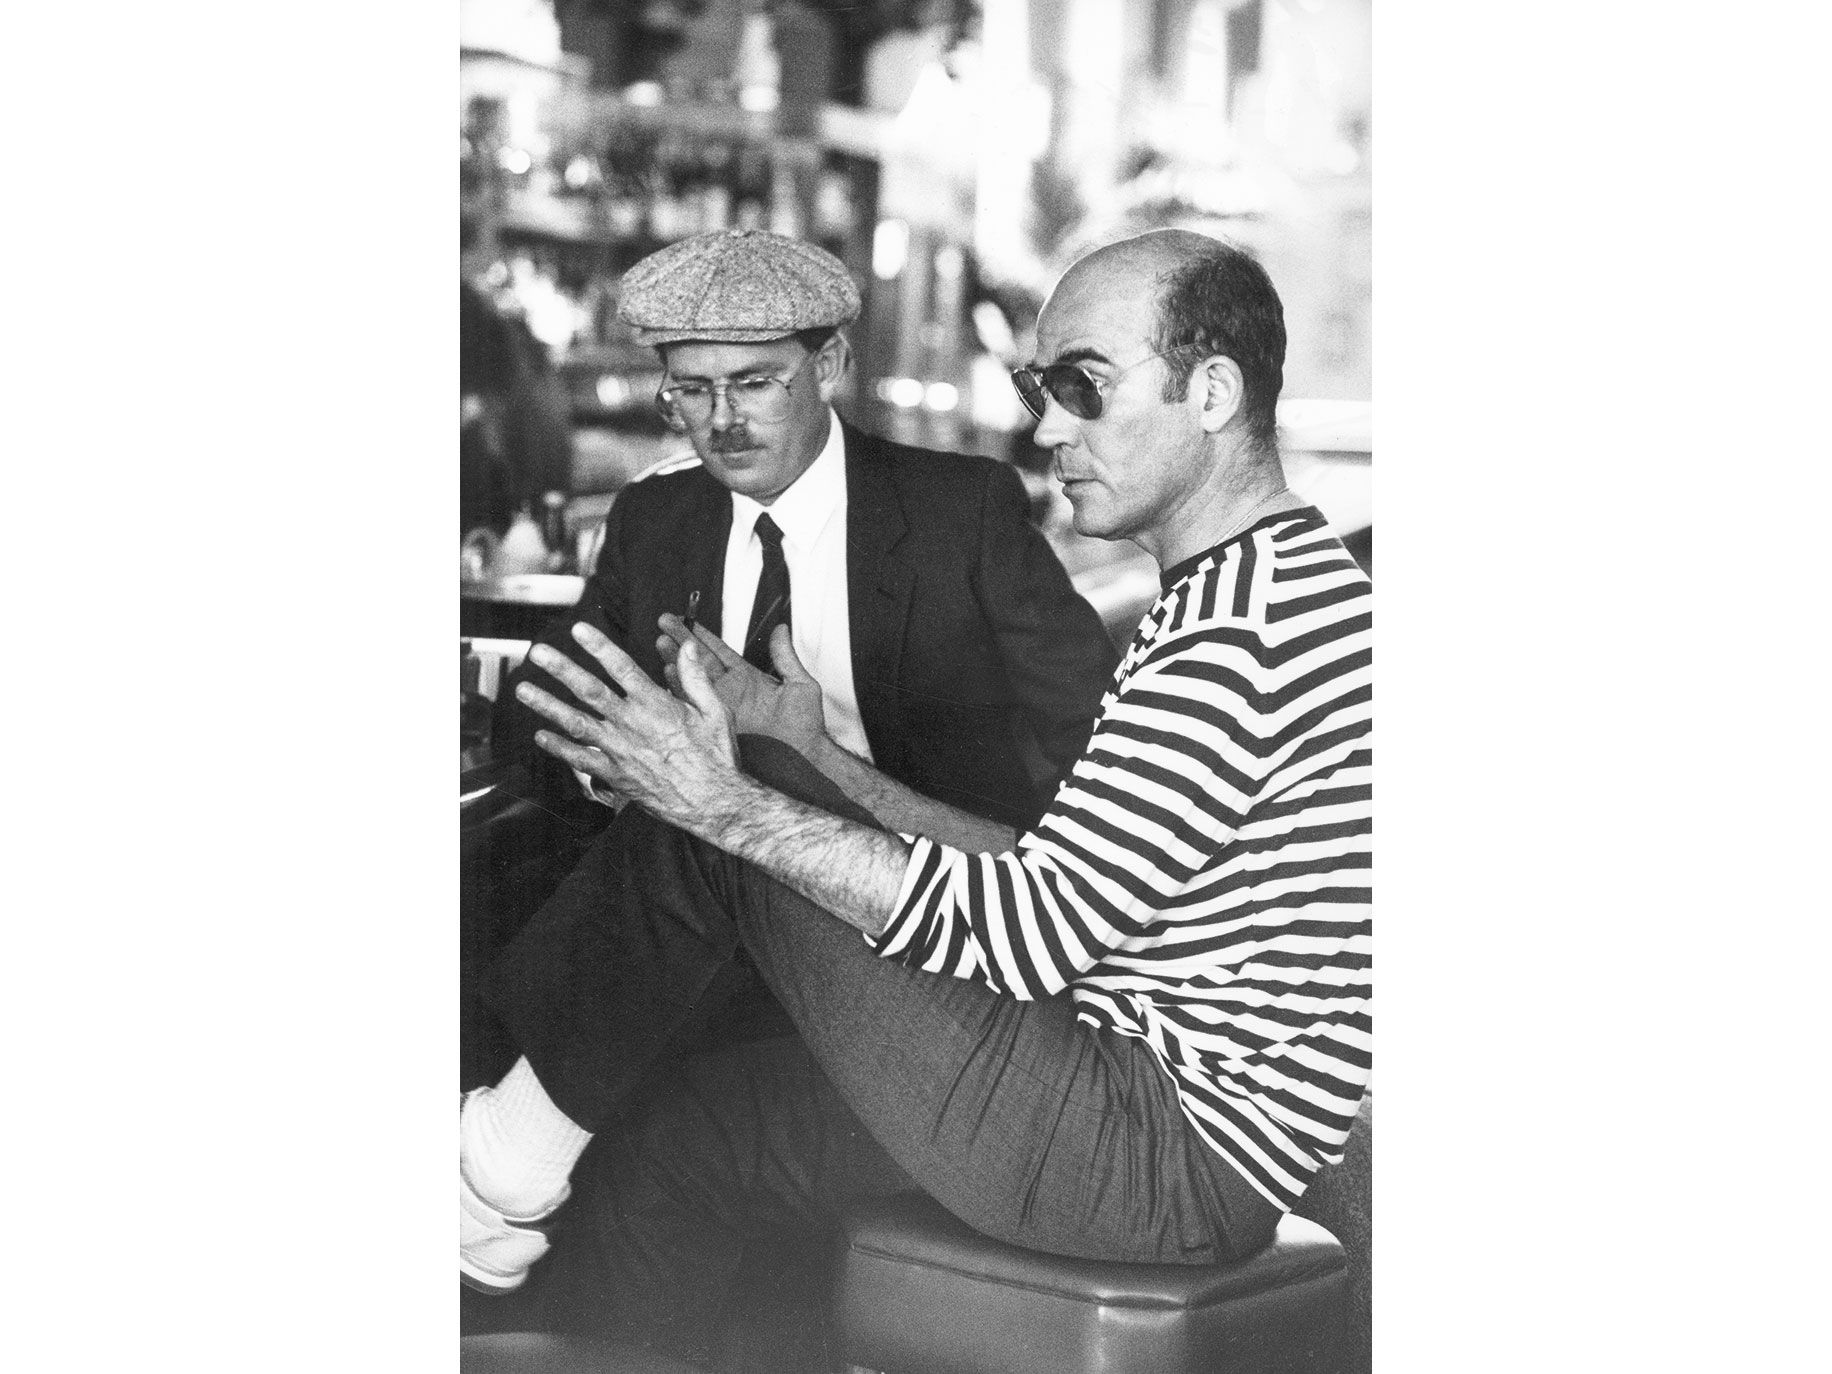 HUNTER S. THOMPSON: When I told Hunter our publishing plan, he told me that this was a plum insane thing to do.